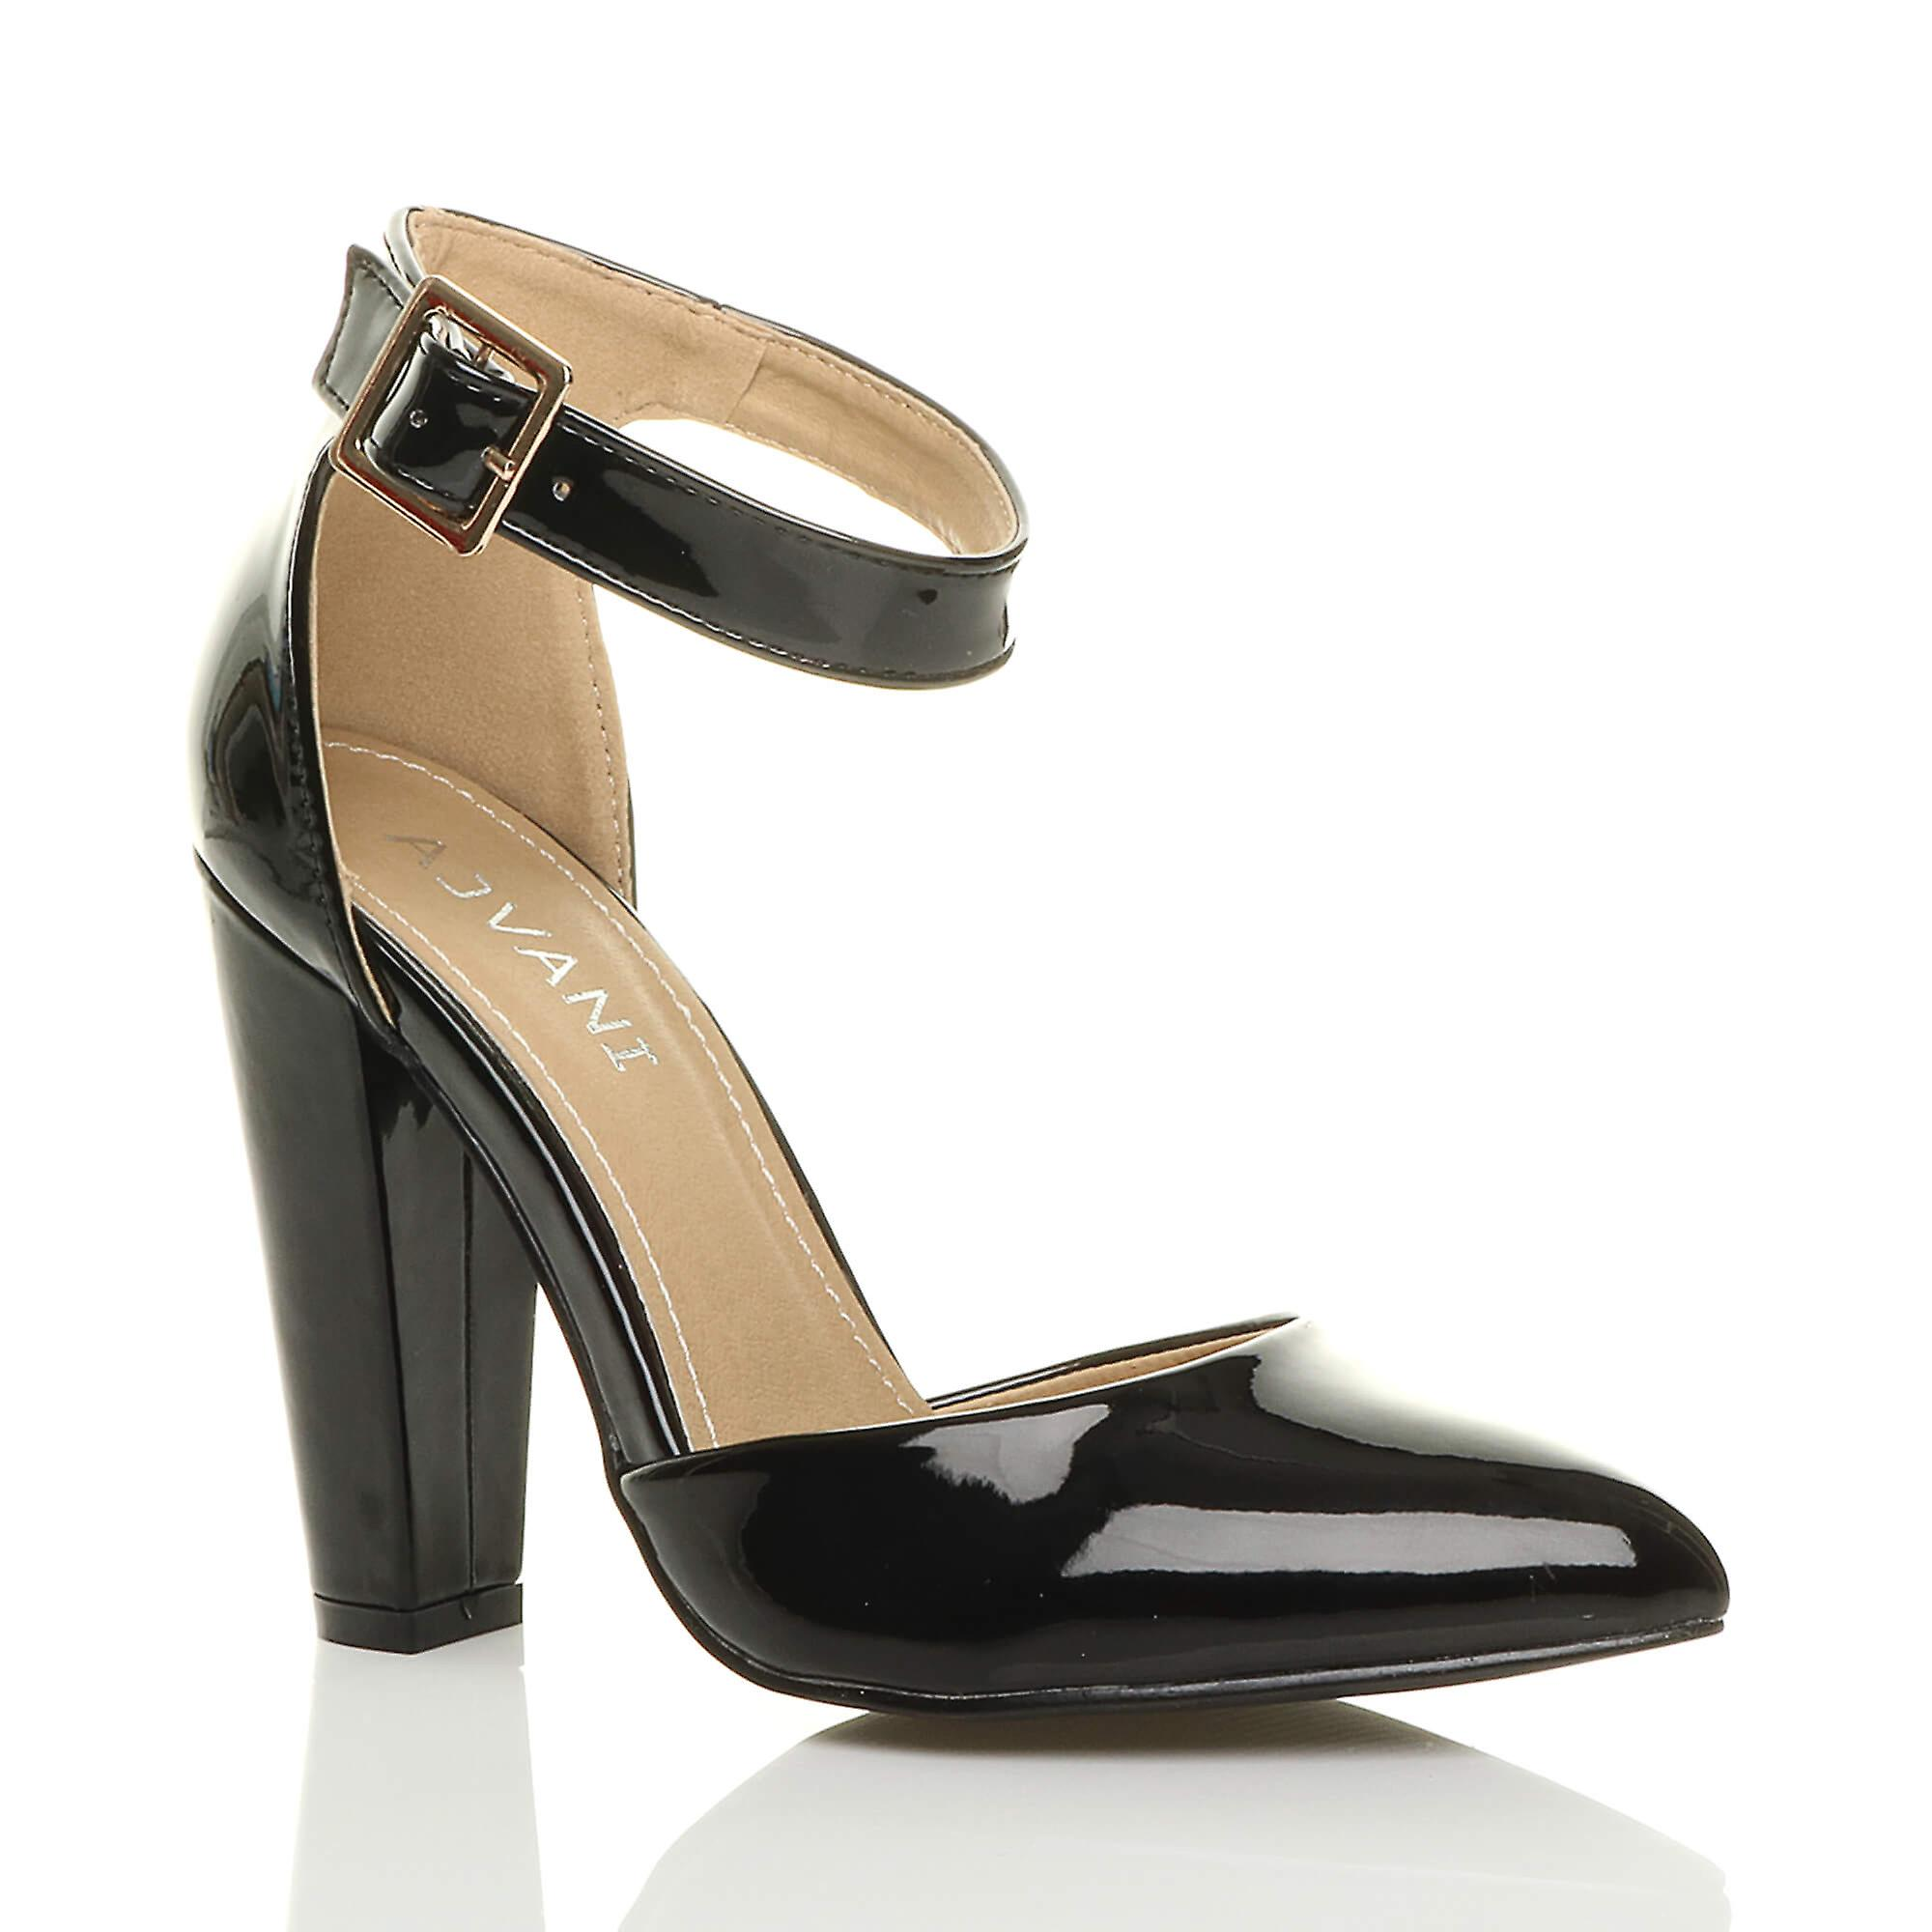 8e140eac16d Ajvani womens high block heel cuff ankle strap buckle pointed court shoes  pumps sandals